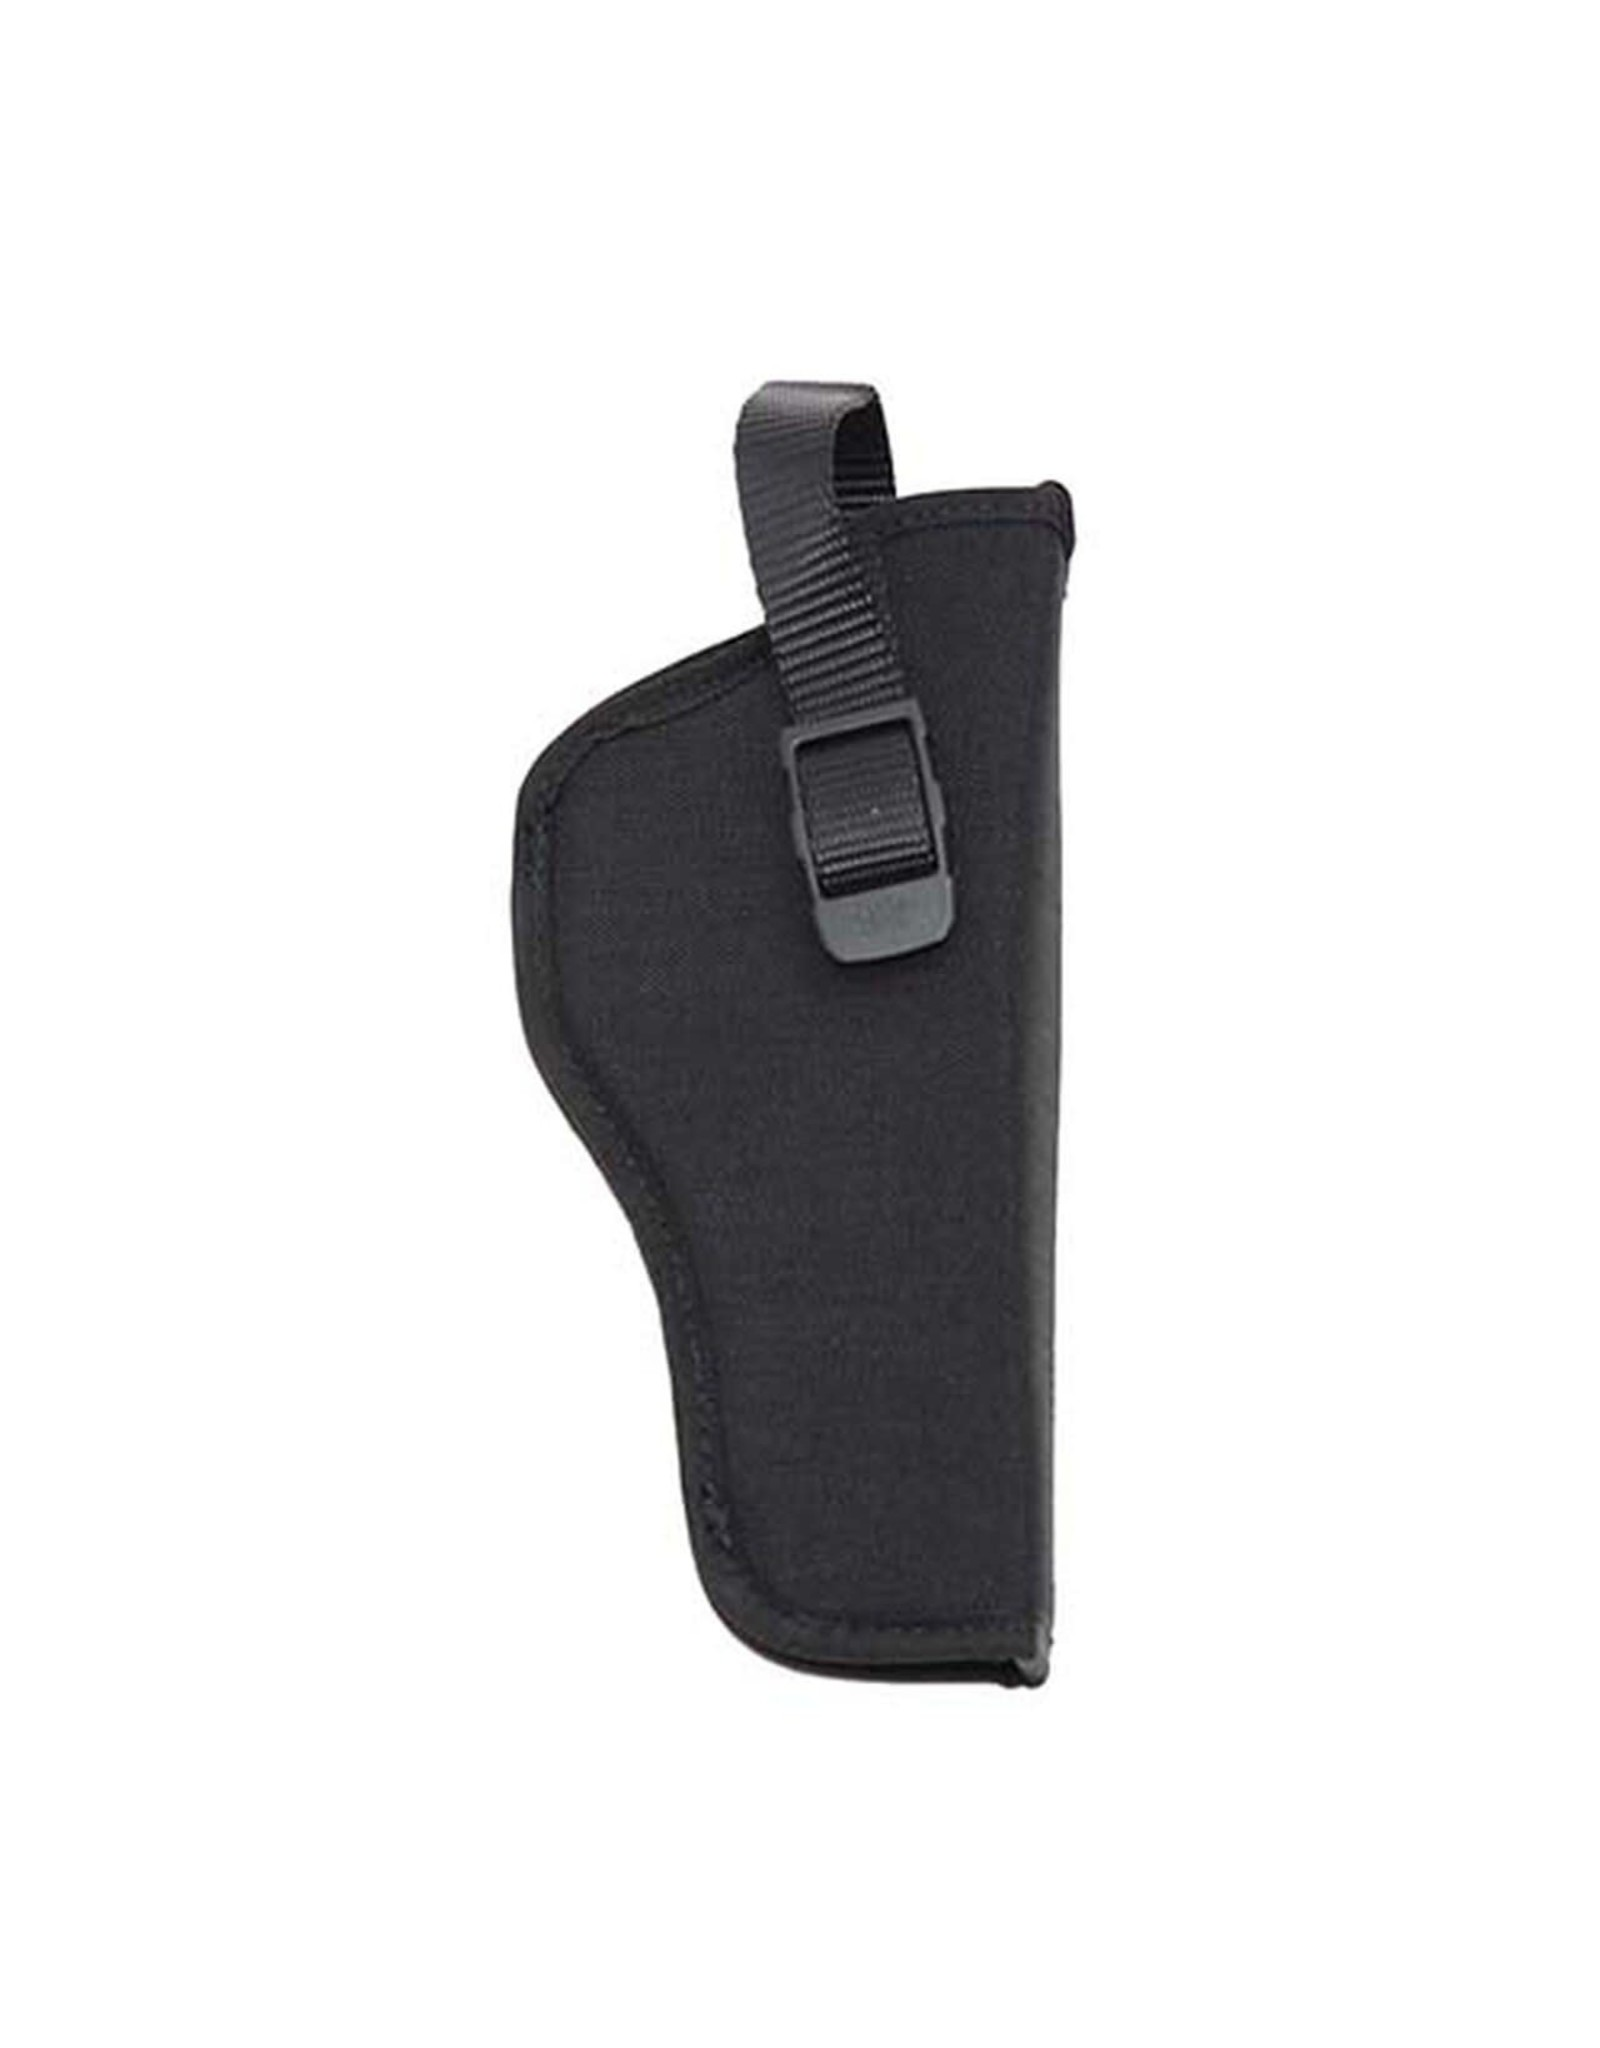 BLACKHAWK! Blackhawk Nylon Hip Holster for Glock 26/27